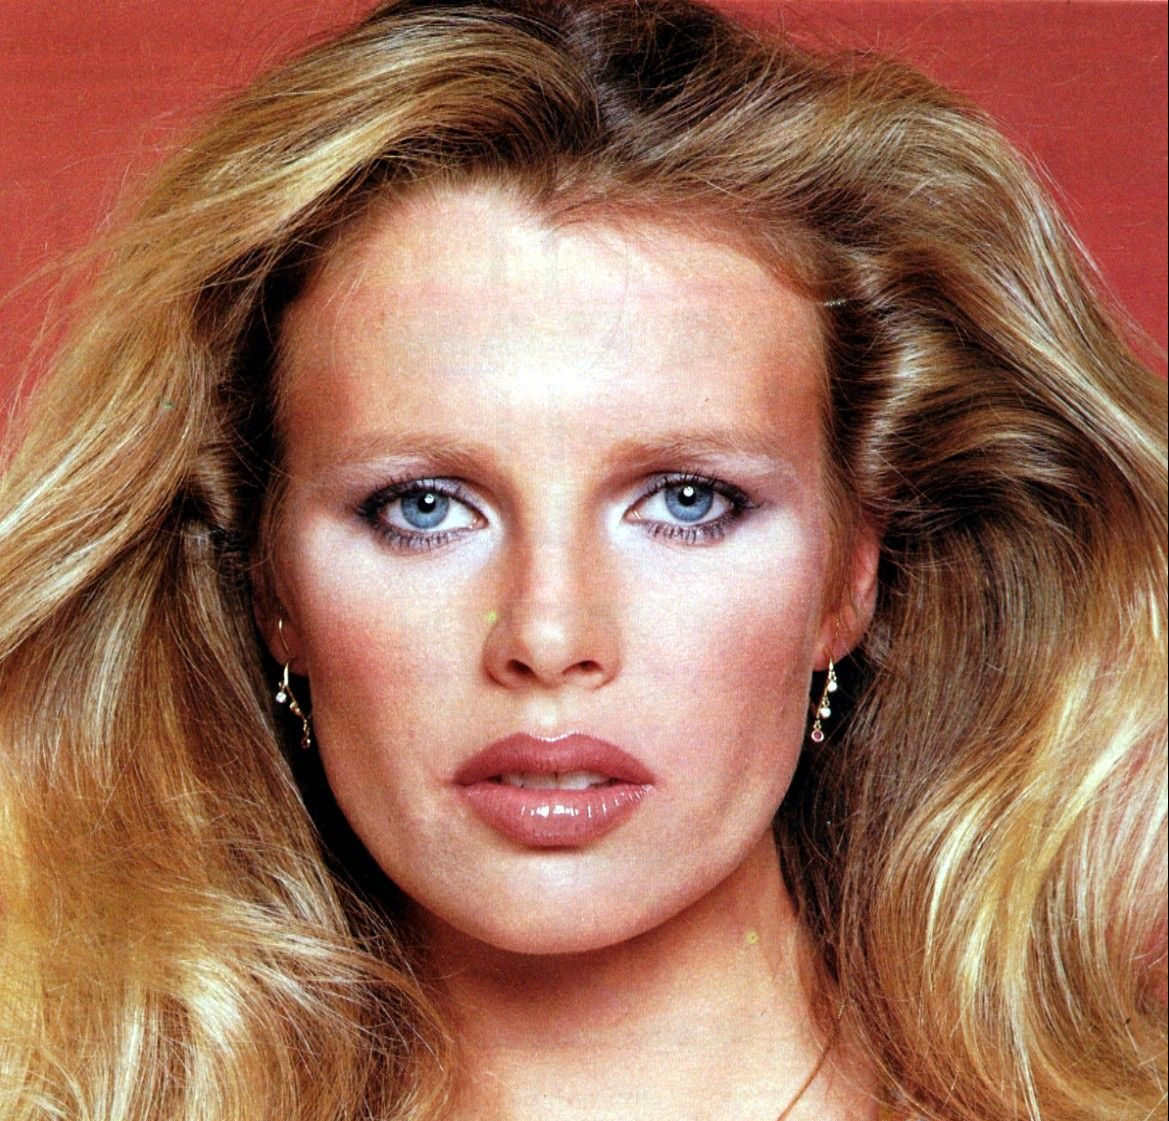 1 86 e1607078025579 10 Things You Might Not Have Known About Kim Basinger